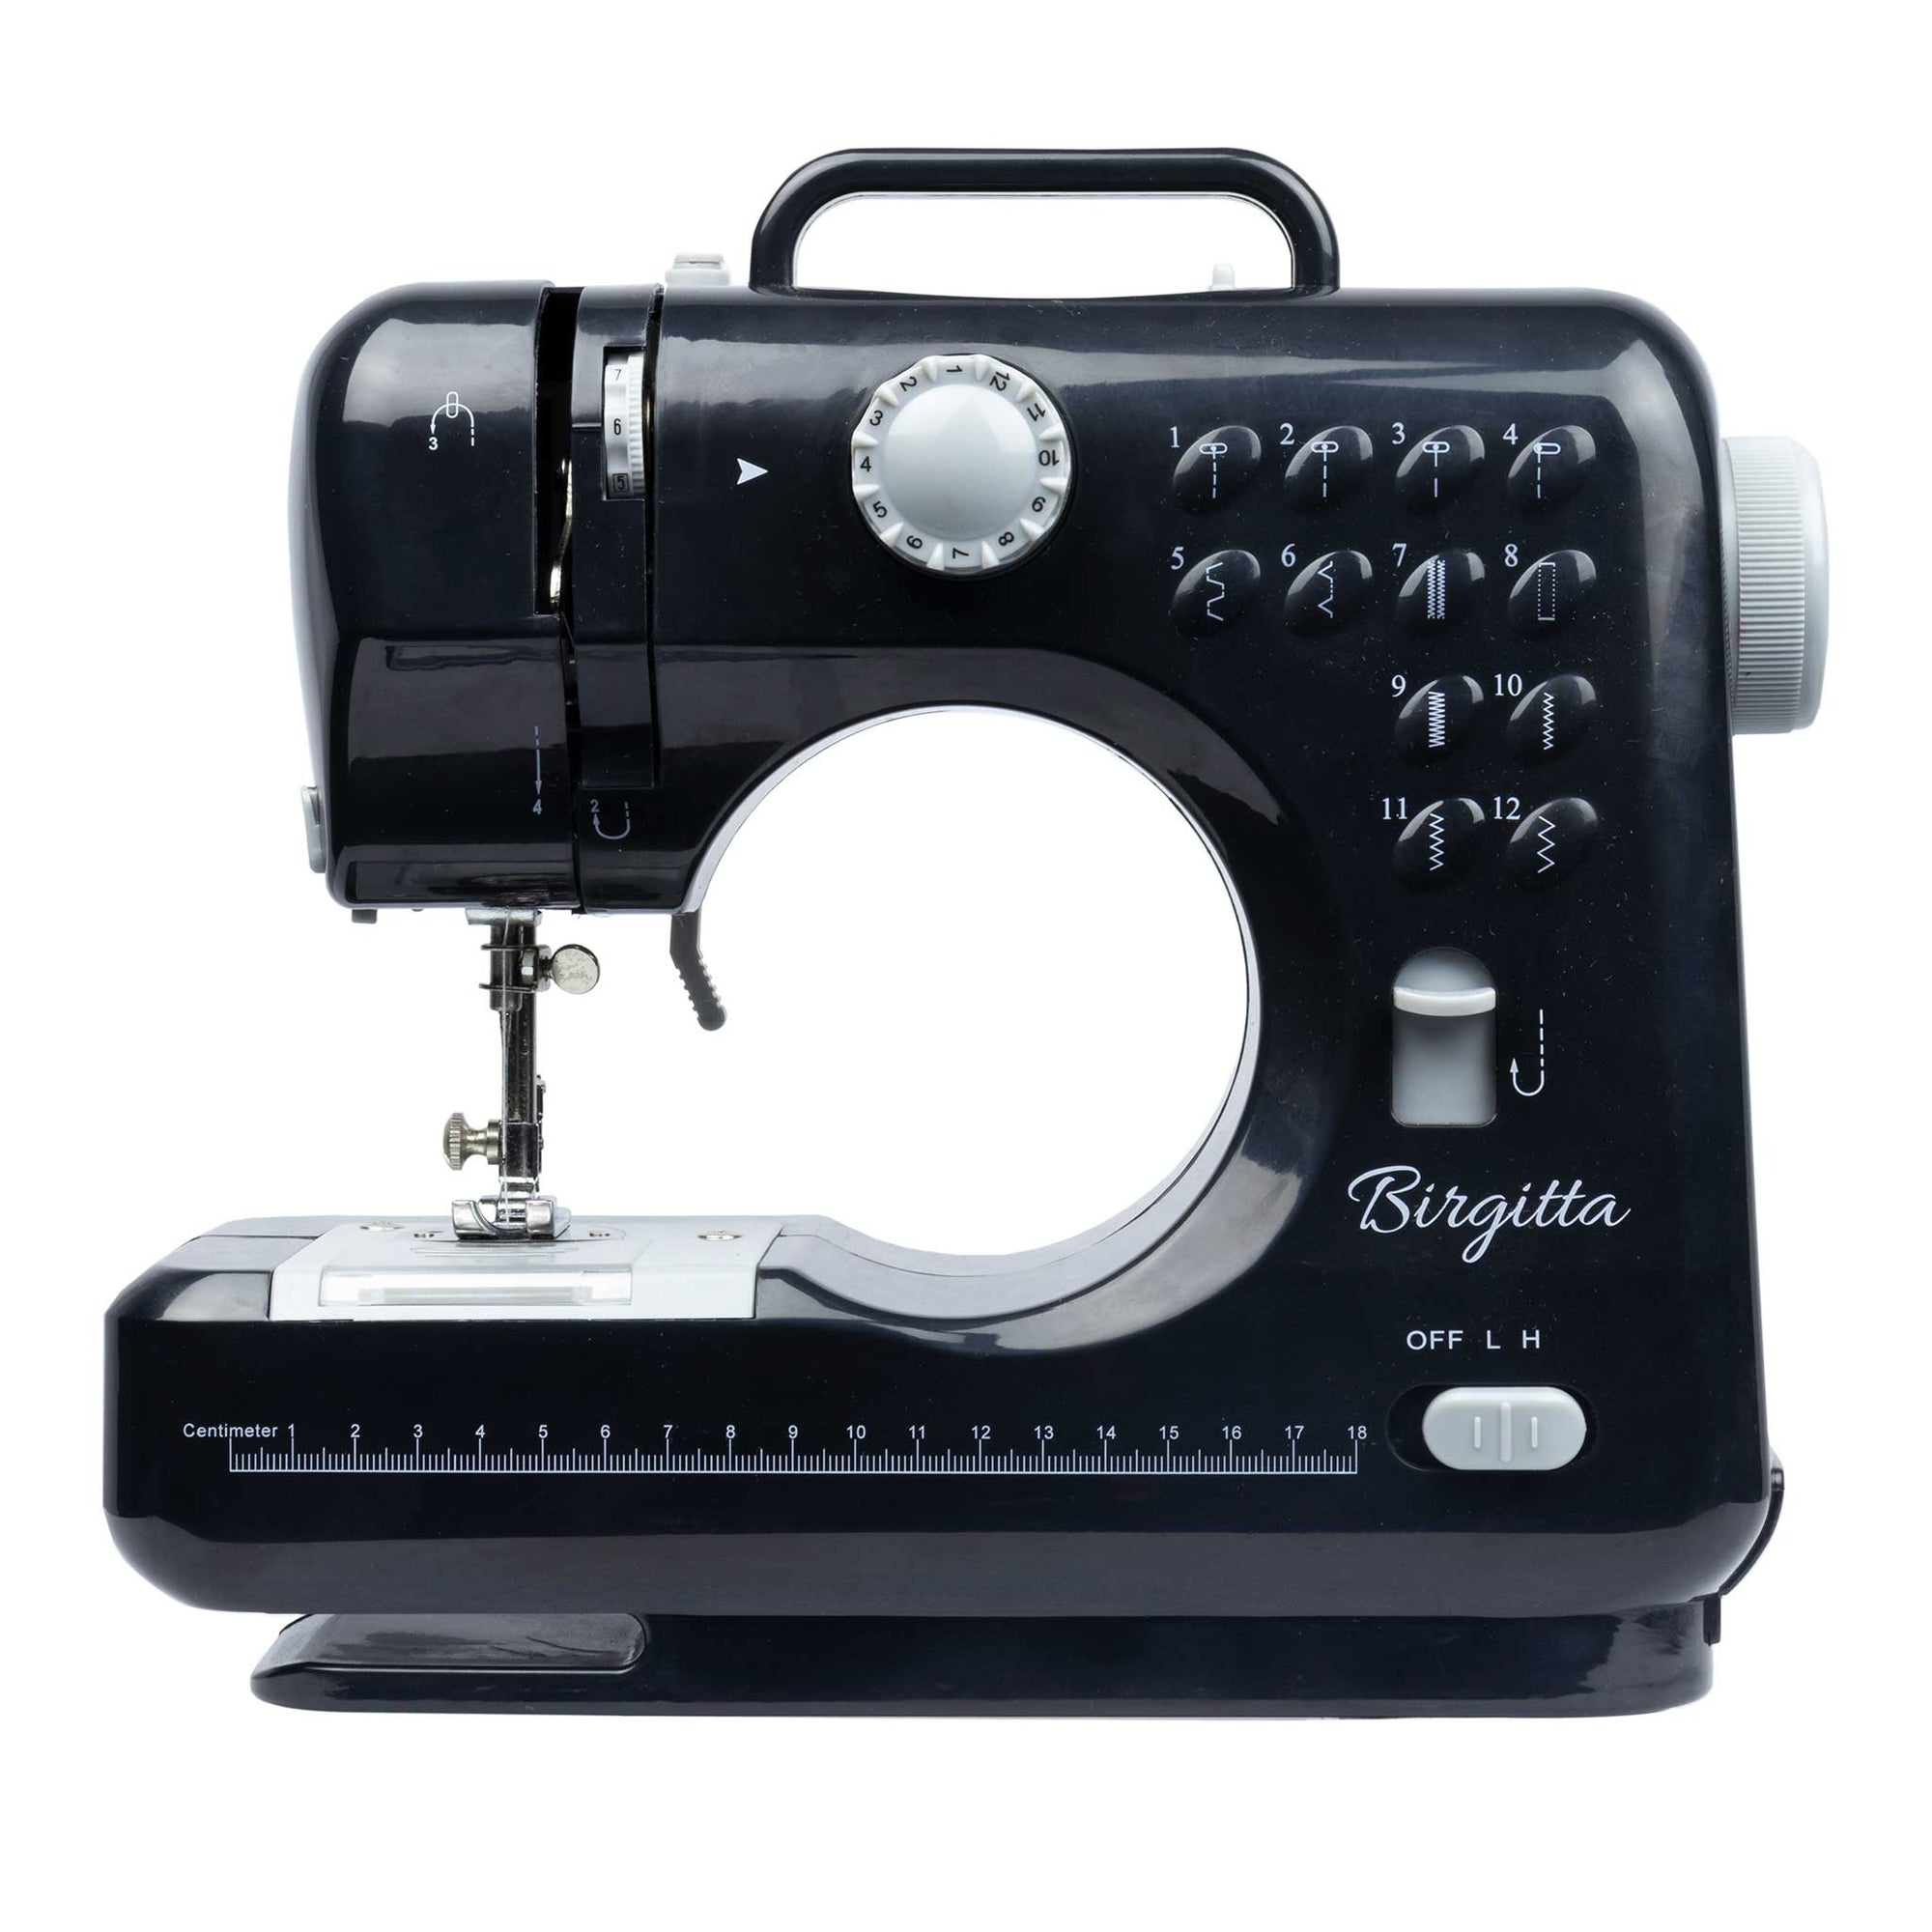 Birgitta Sewing Machine, Standard Dark Grey